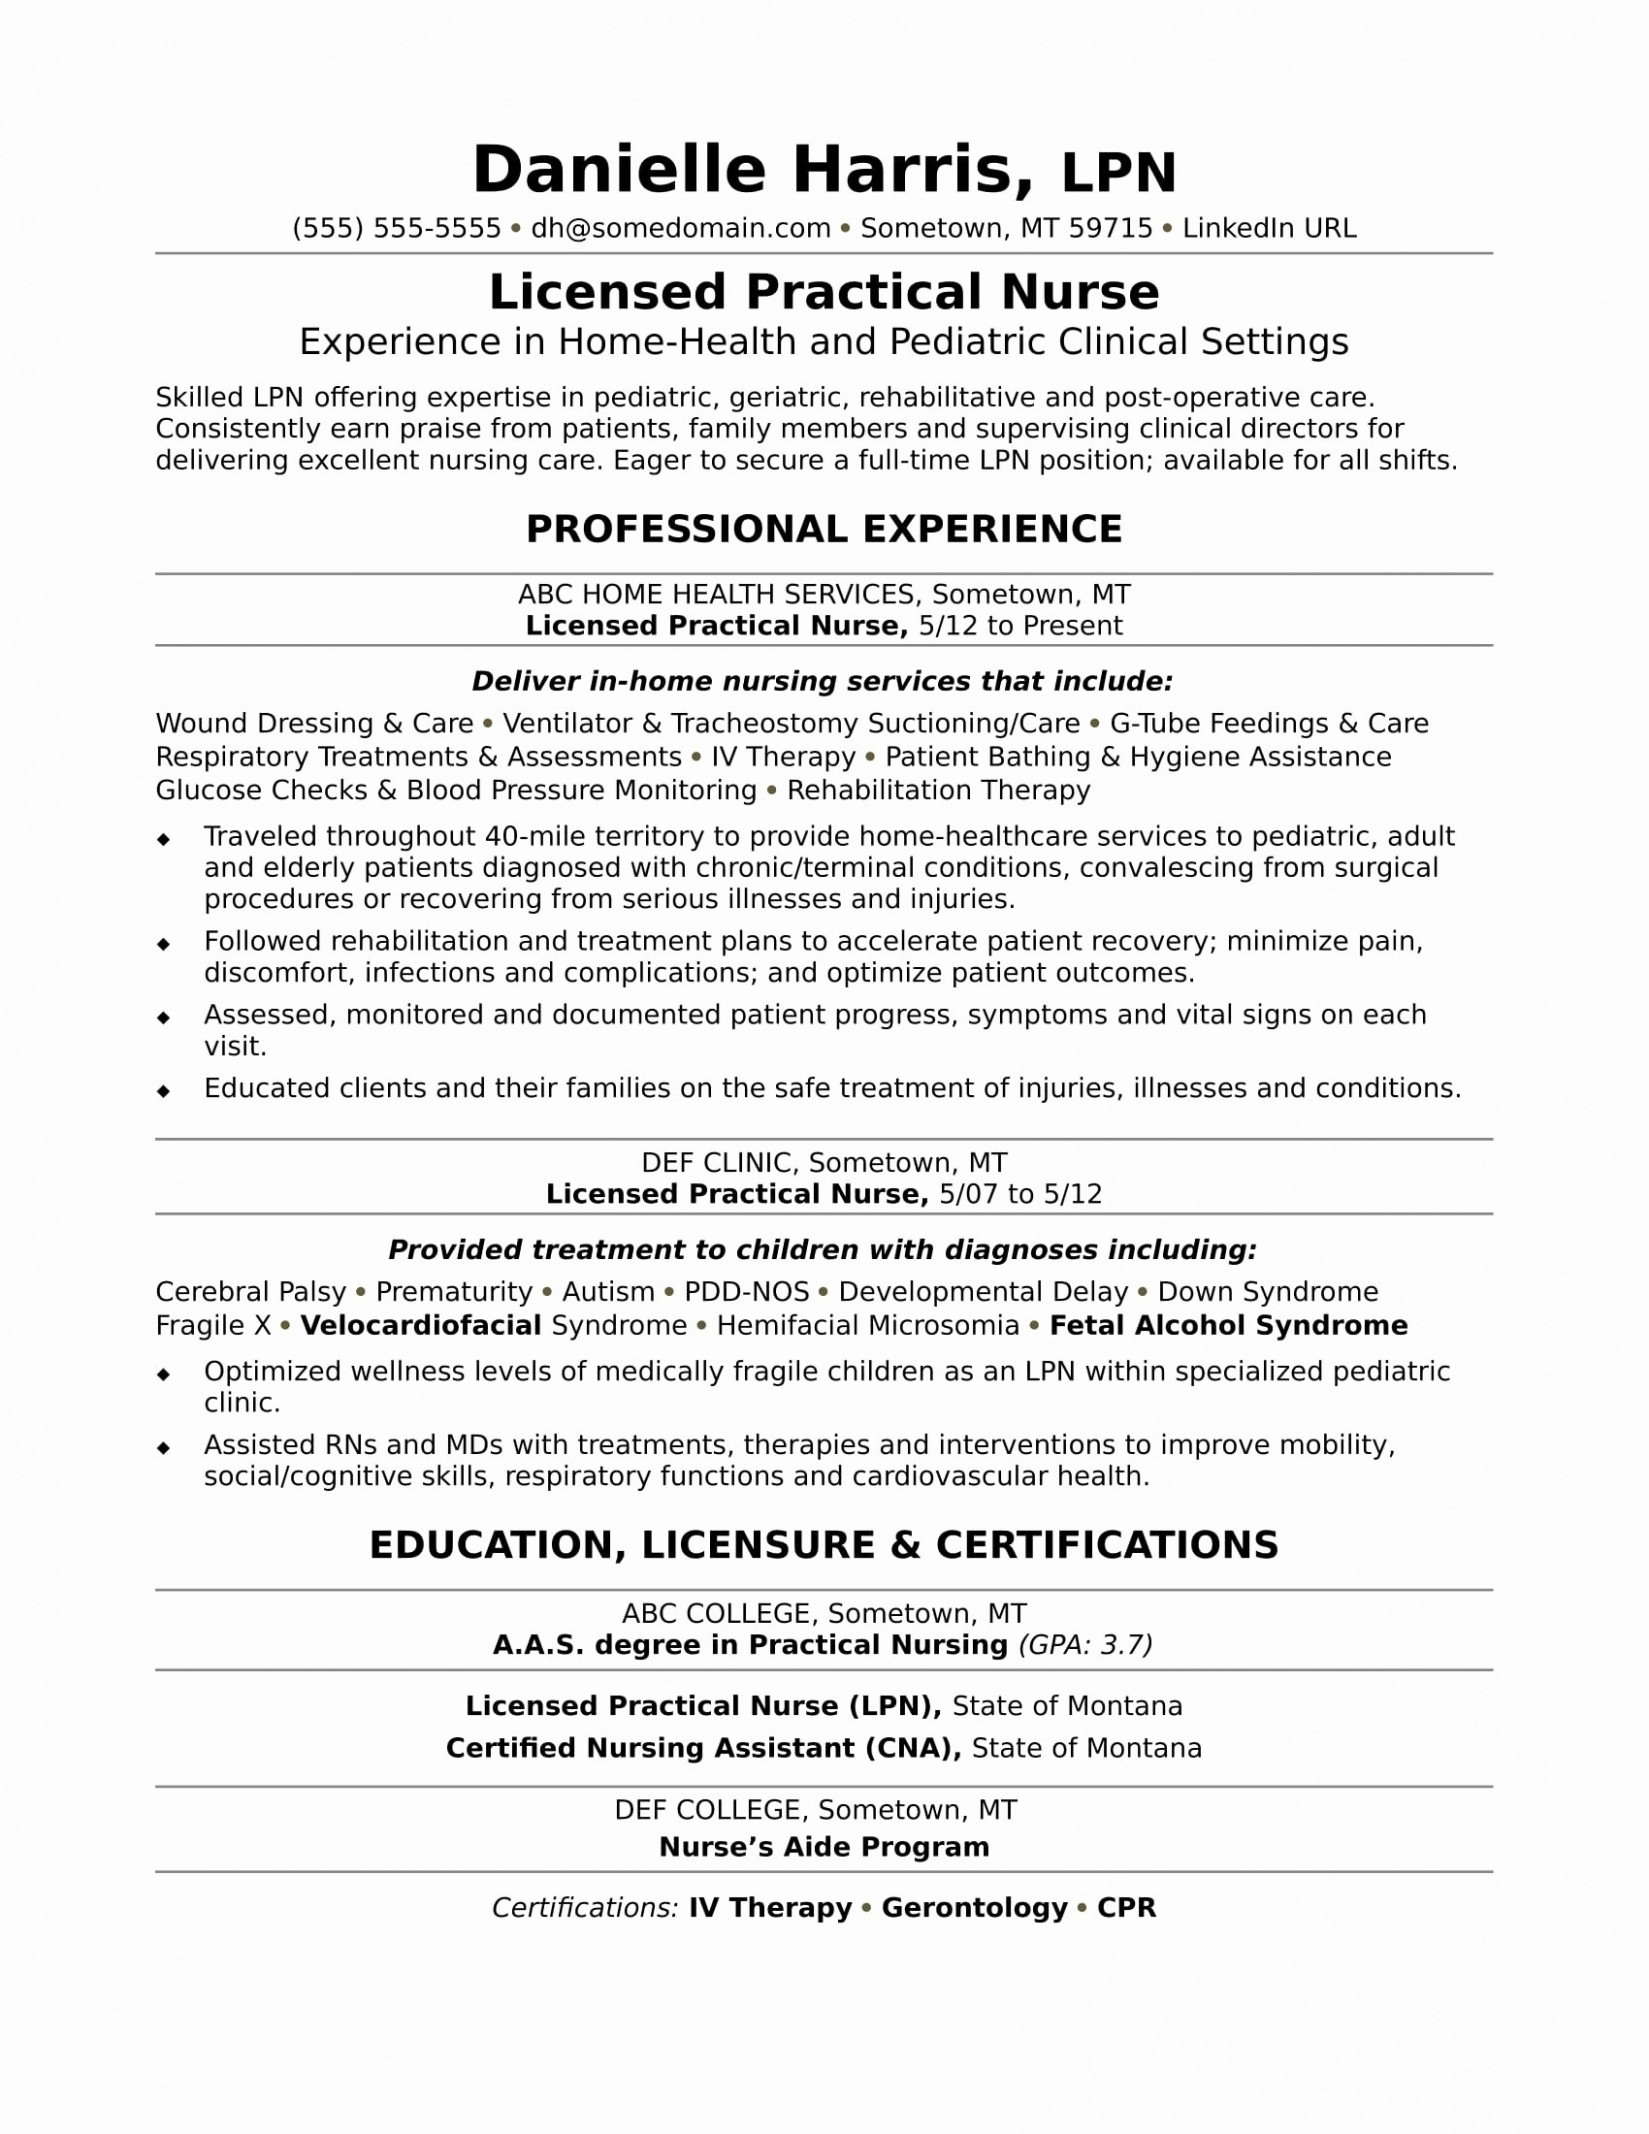 lvn skills for resume example-Resume Lpn New Elegant New Nurse Resume Awesome Nurse Resume 0d Wallpapers 42 5-q